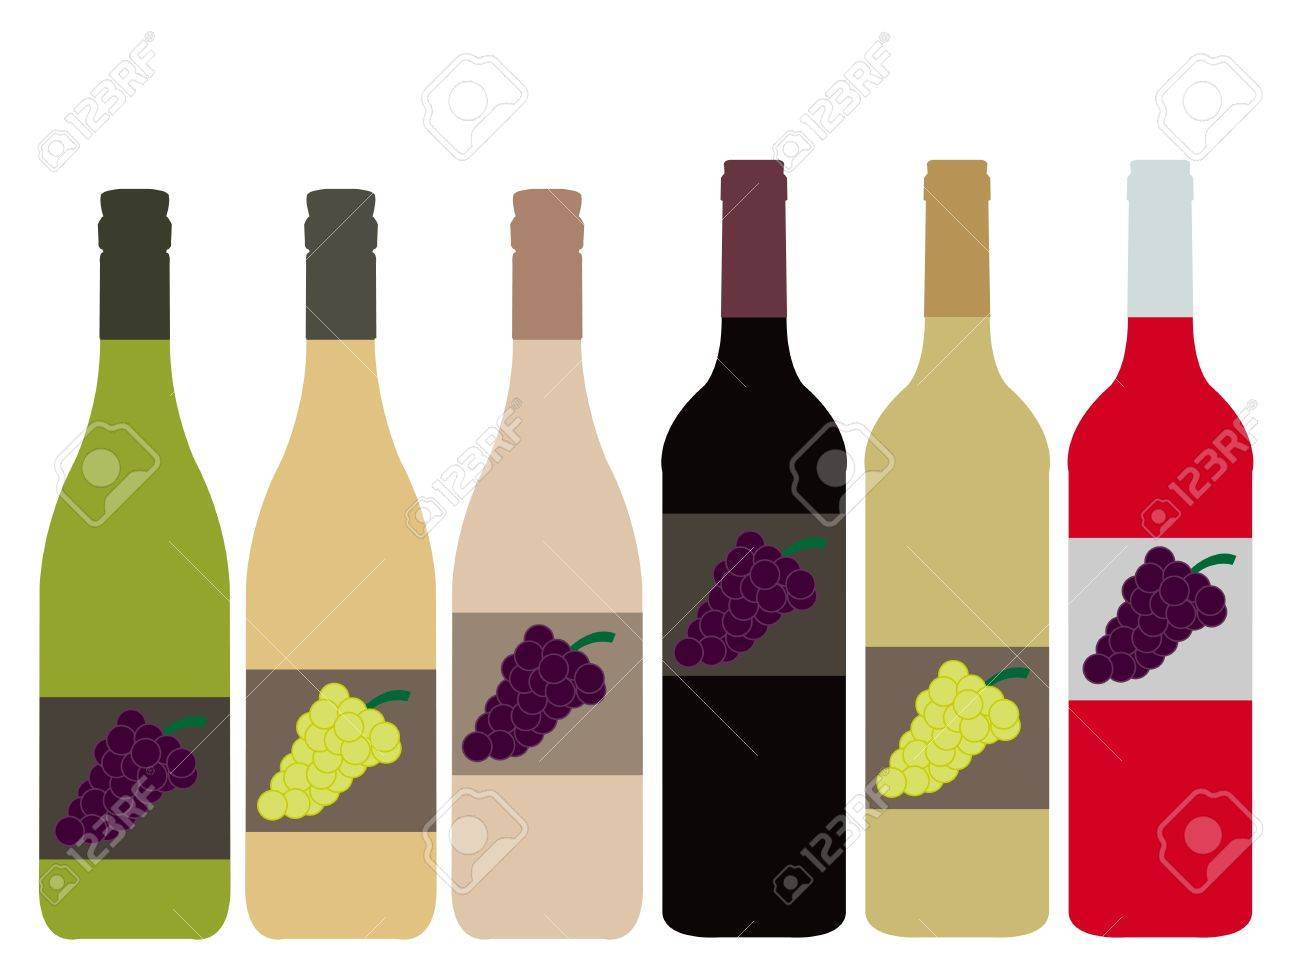 Different Kinds of Wine Bottles Stock Vector - 15388224